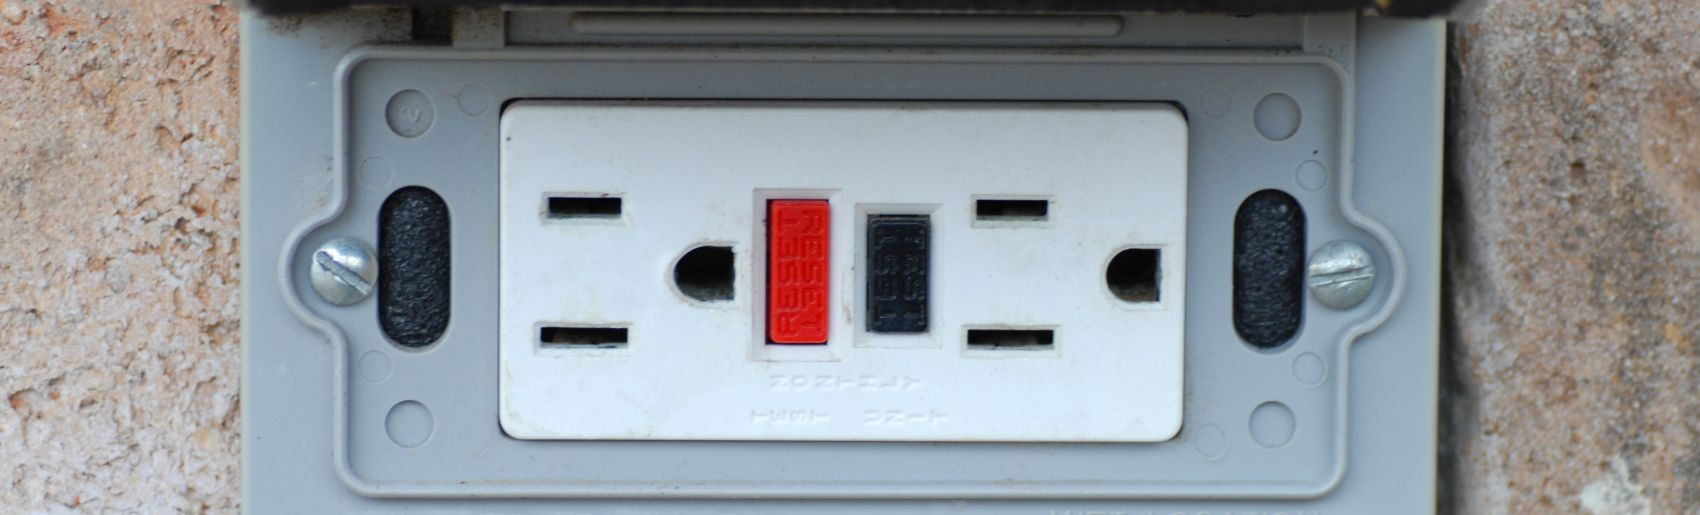 gfci electrical outlet repair in albuquerque